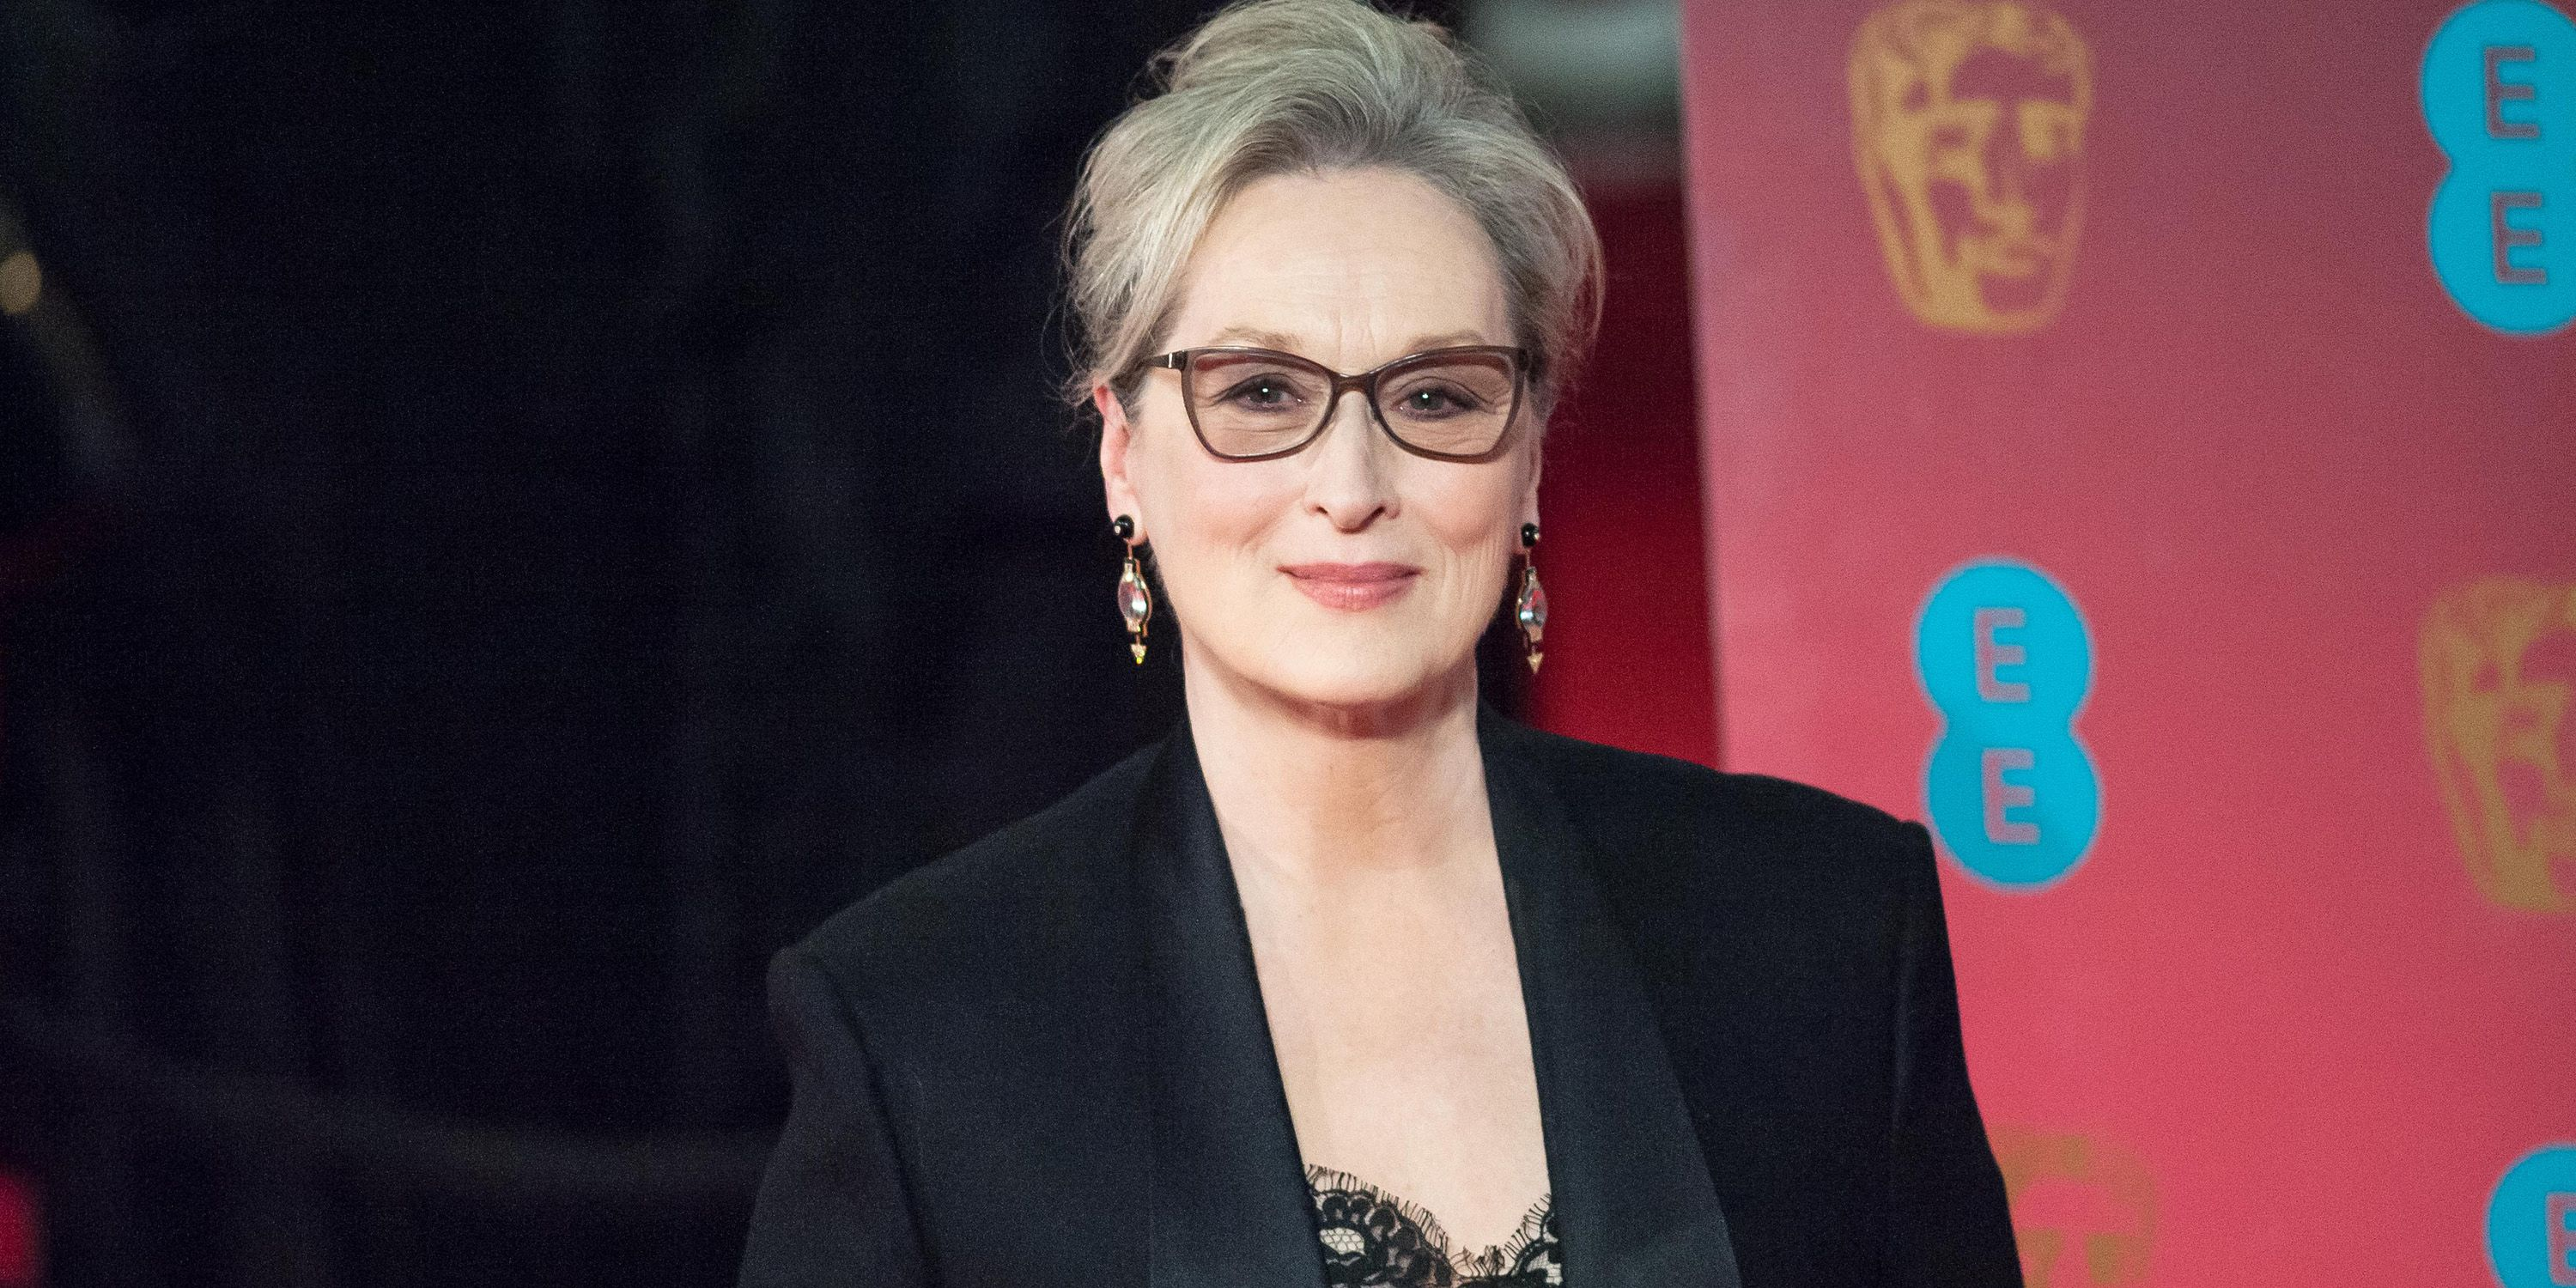 Communication on this topic: Meryl Streep has a handbag with Michelle , meryl-streep-has-a-handbag-with-michelle/